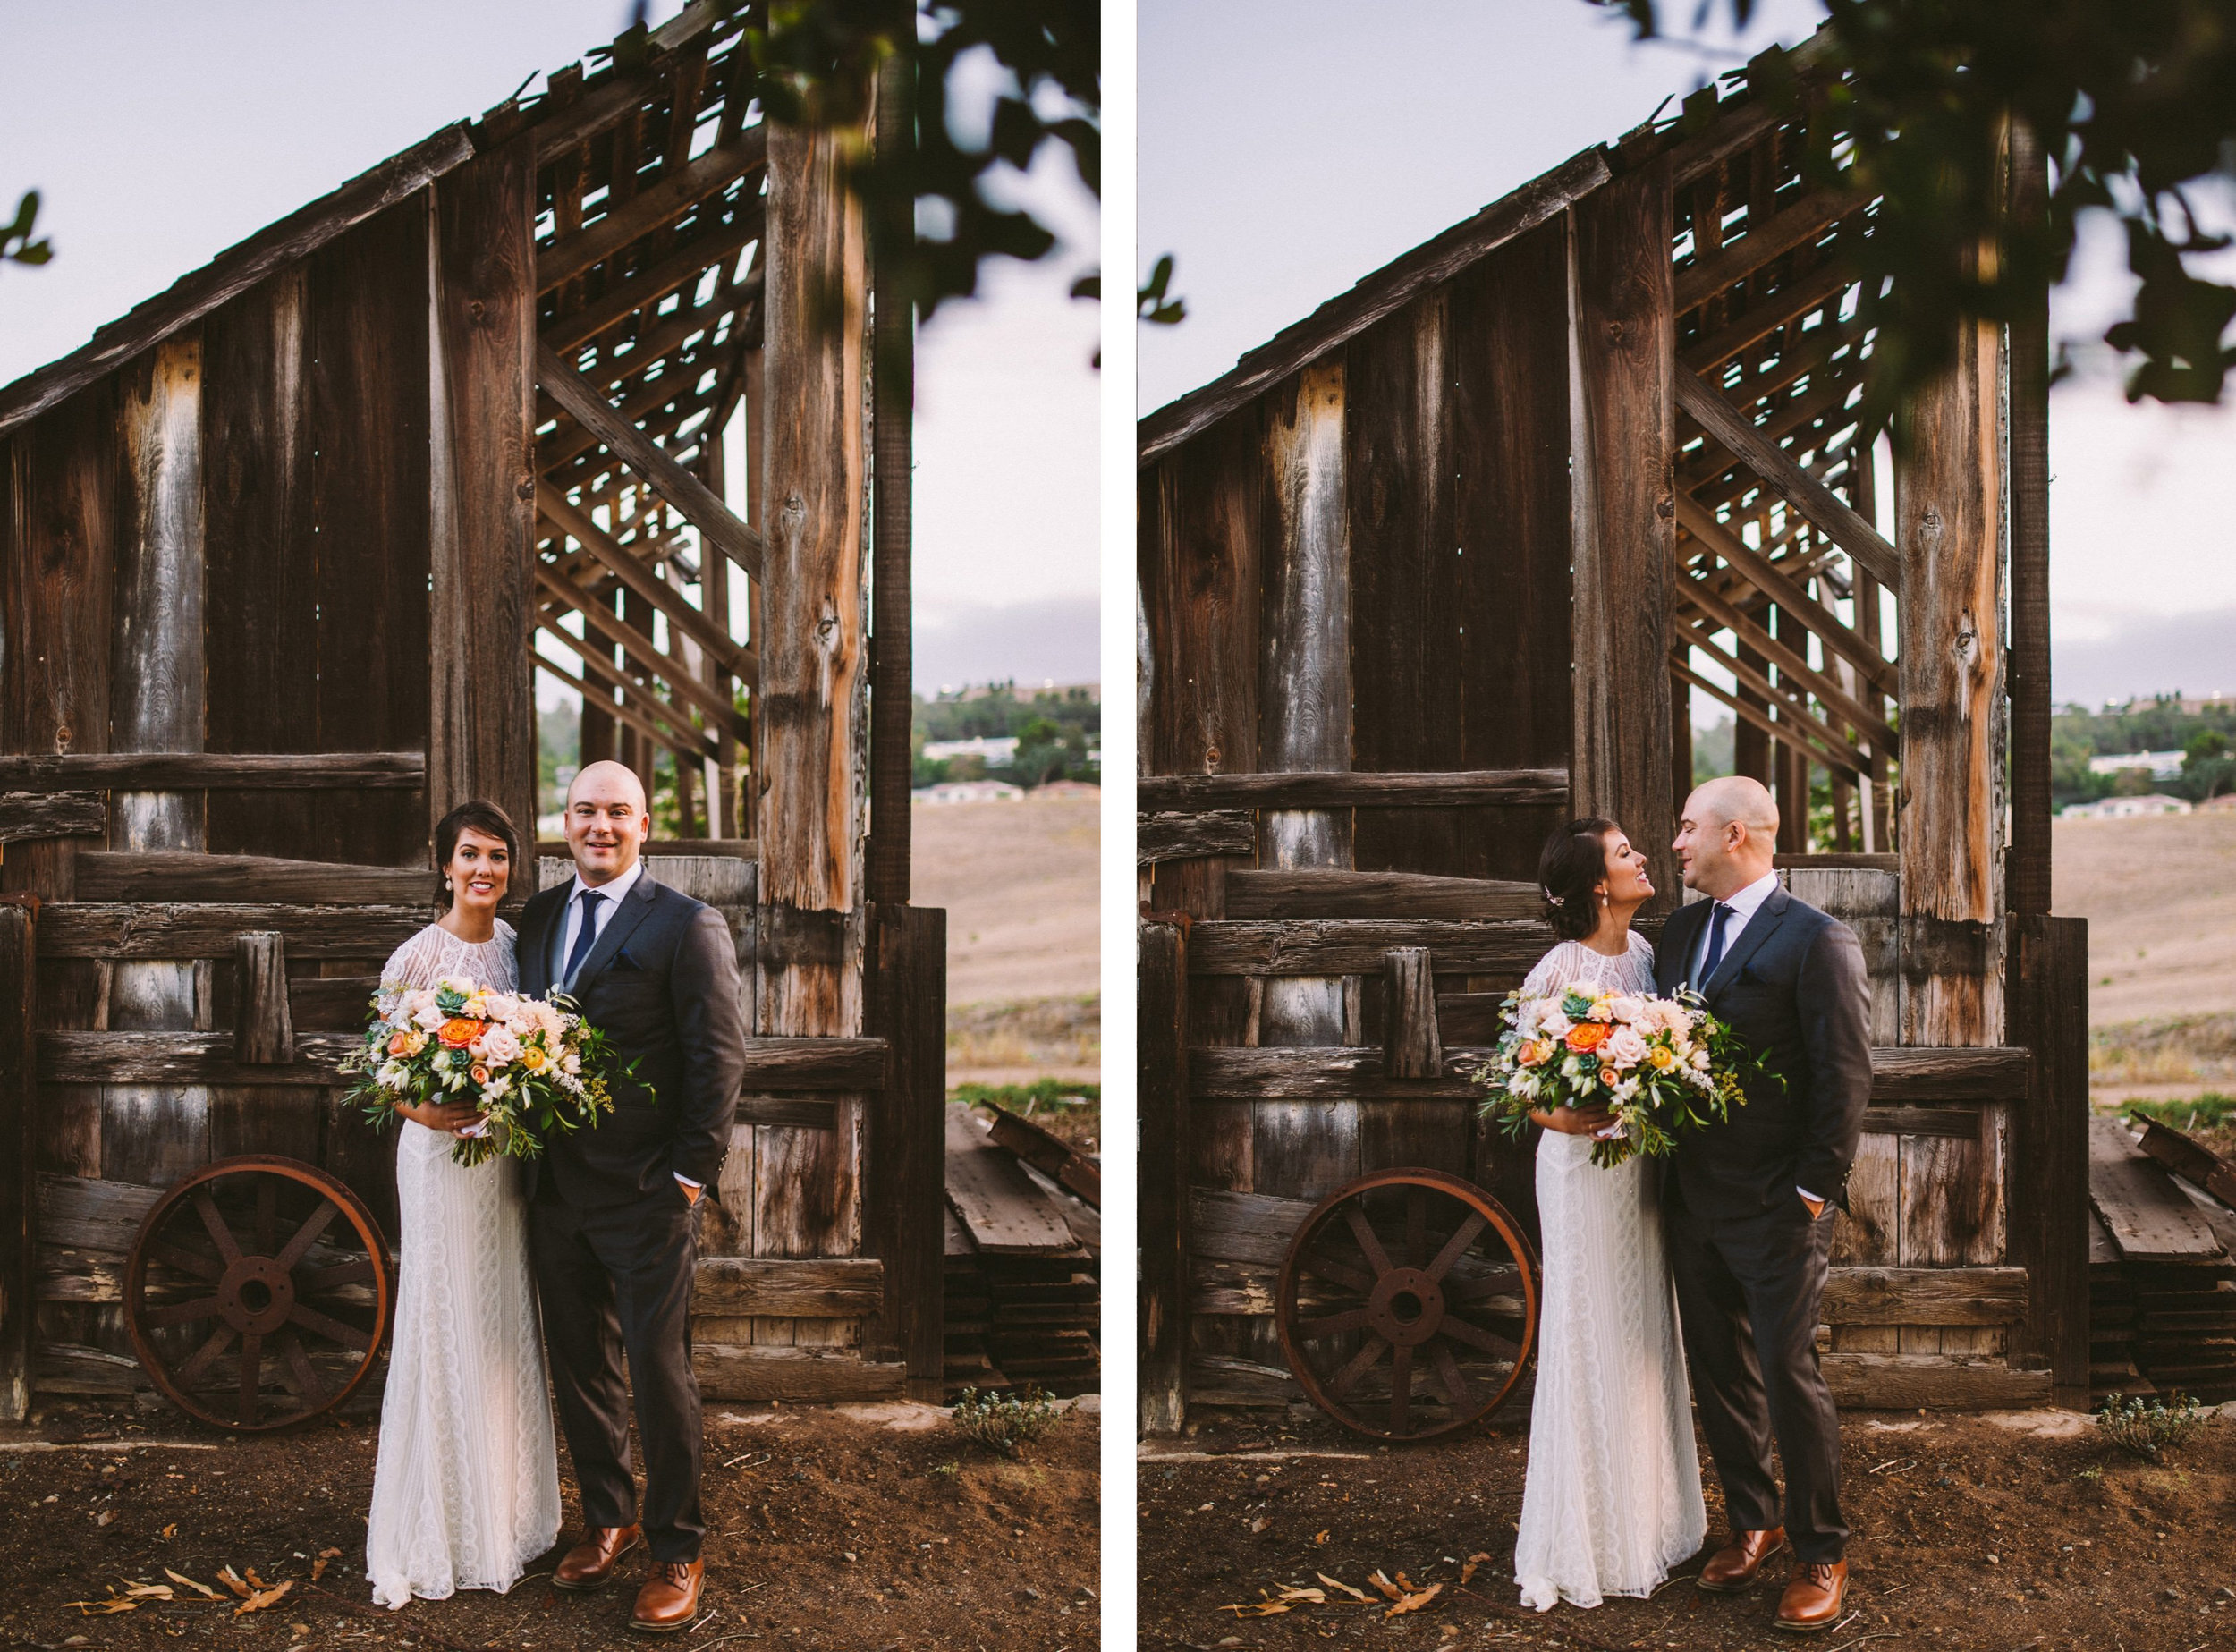 Bride & Groom In Front of Barn at The Old Rancho in Carlsbad